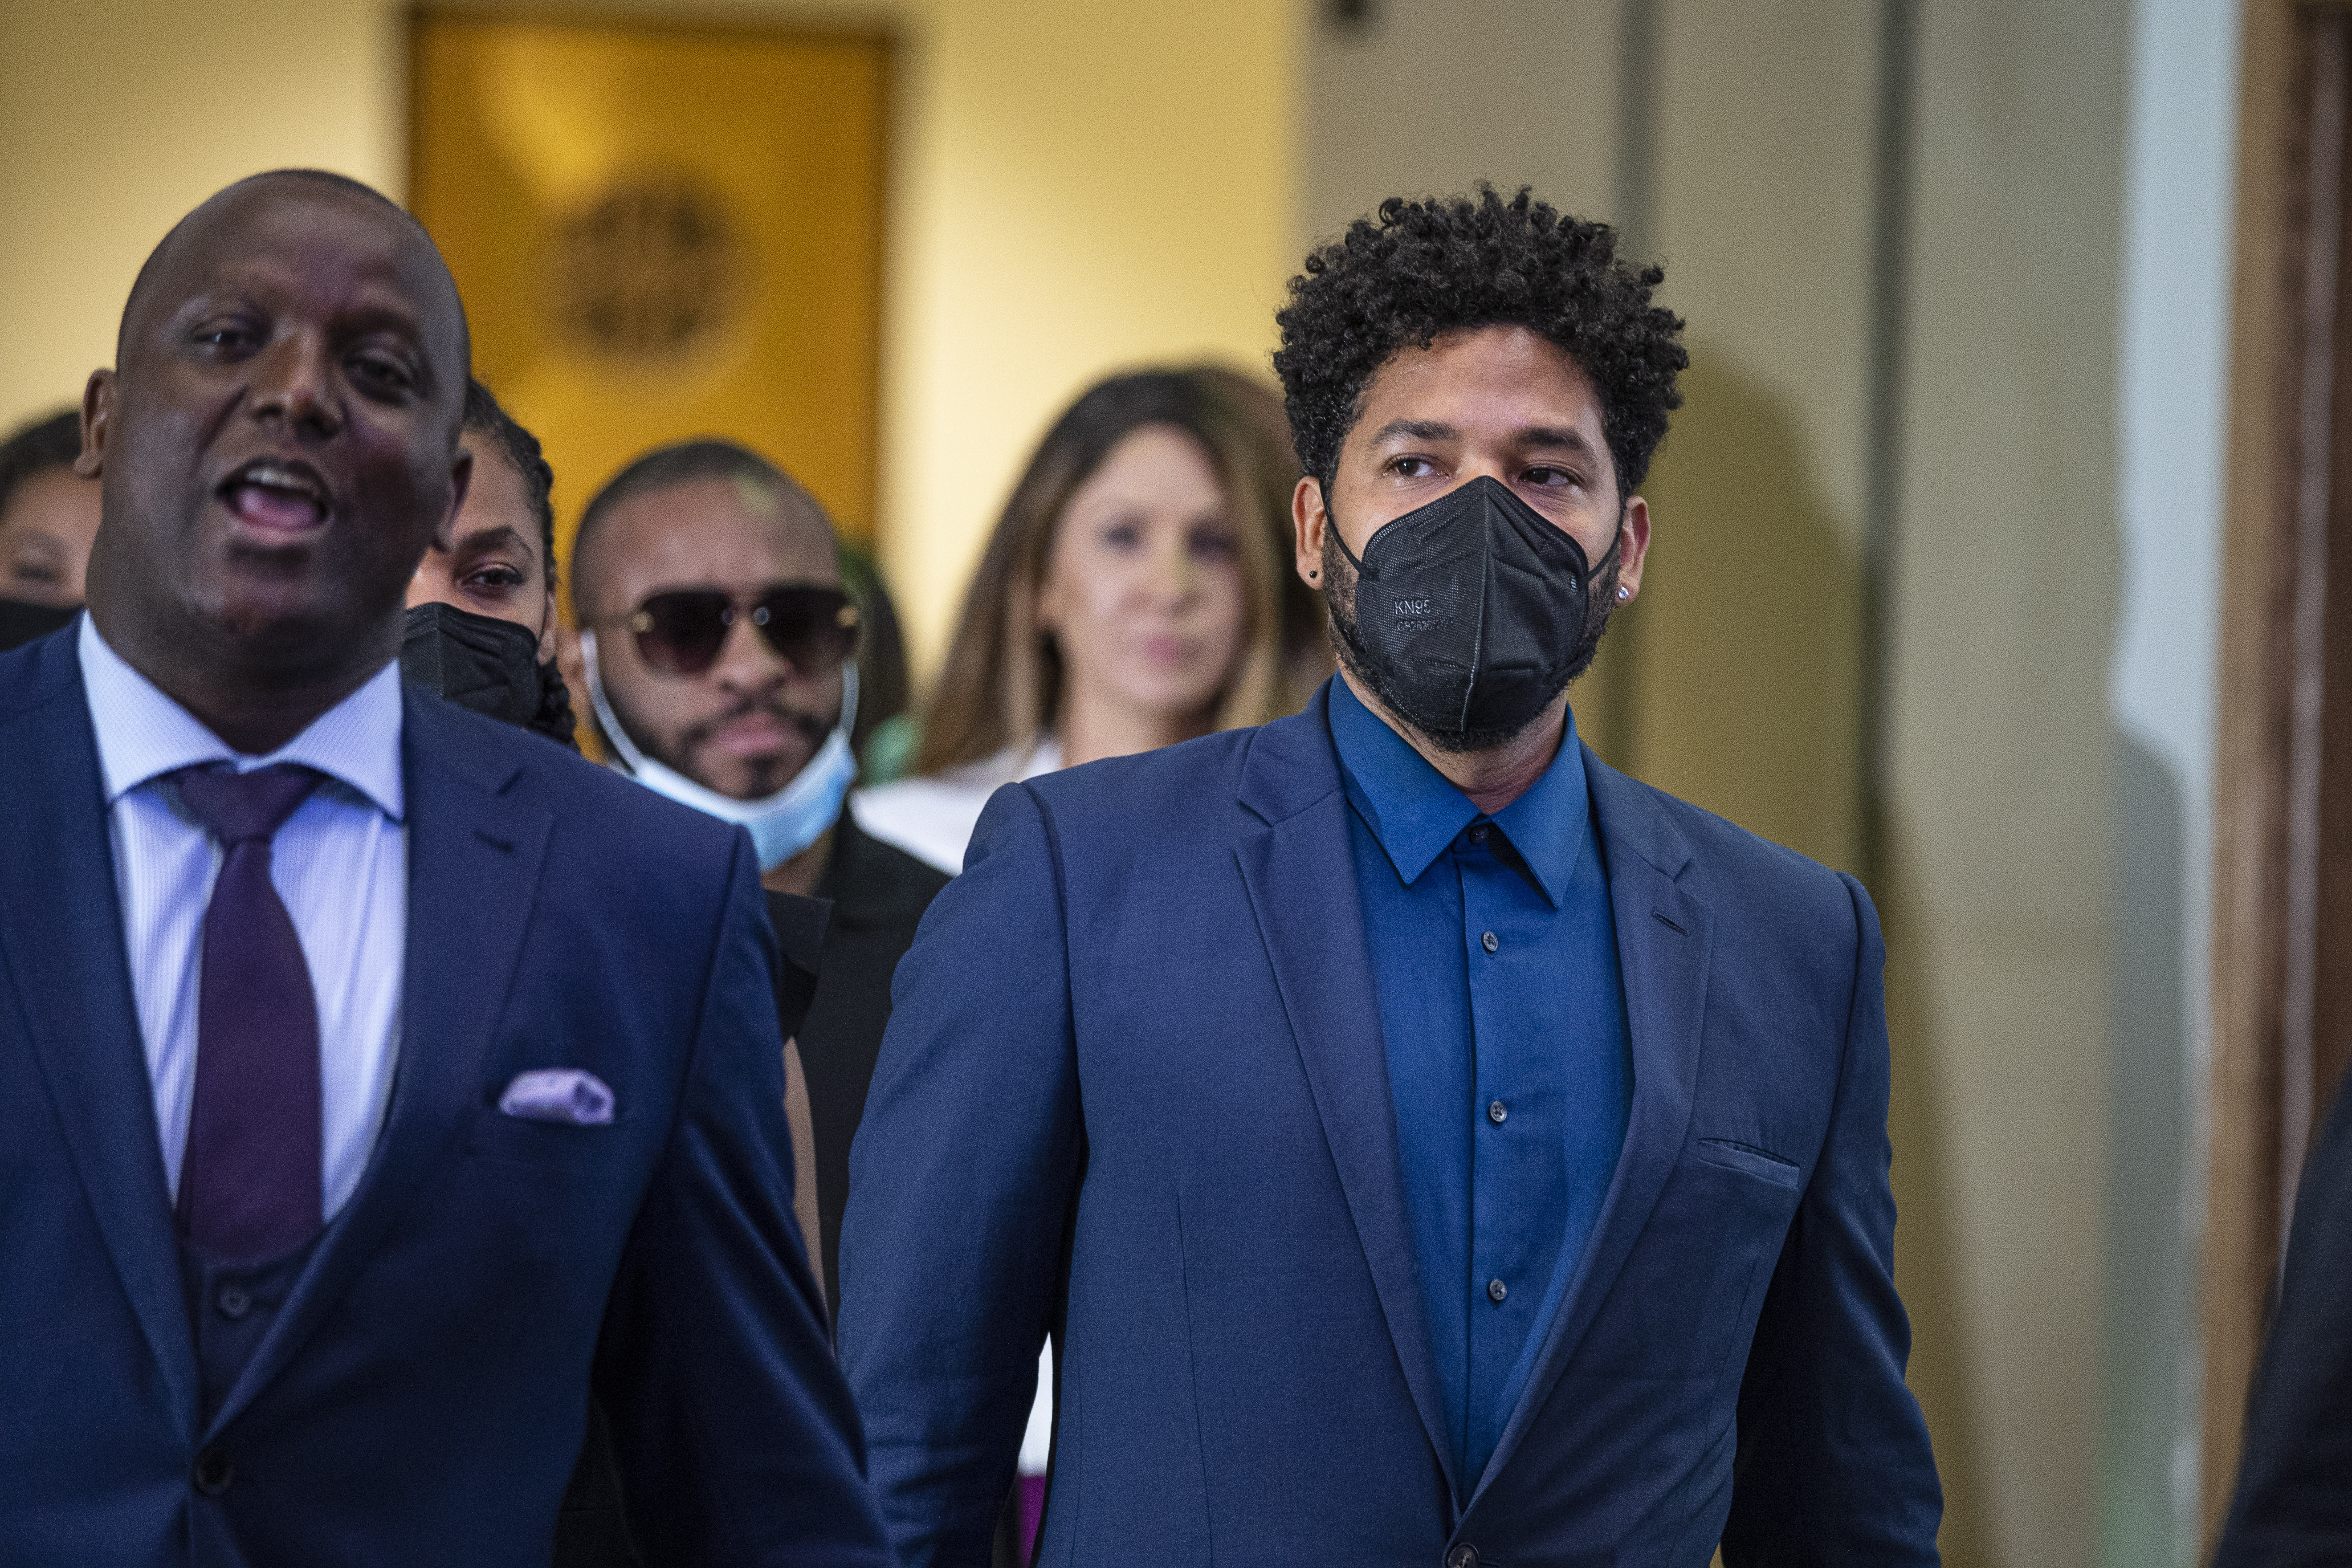 Attorney Nenye Uche, left, and Jussie Smollett leave a hearing at the Leighton Criminal Courthouse on July 14, 2021.